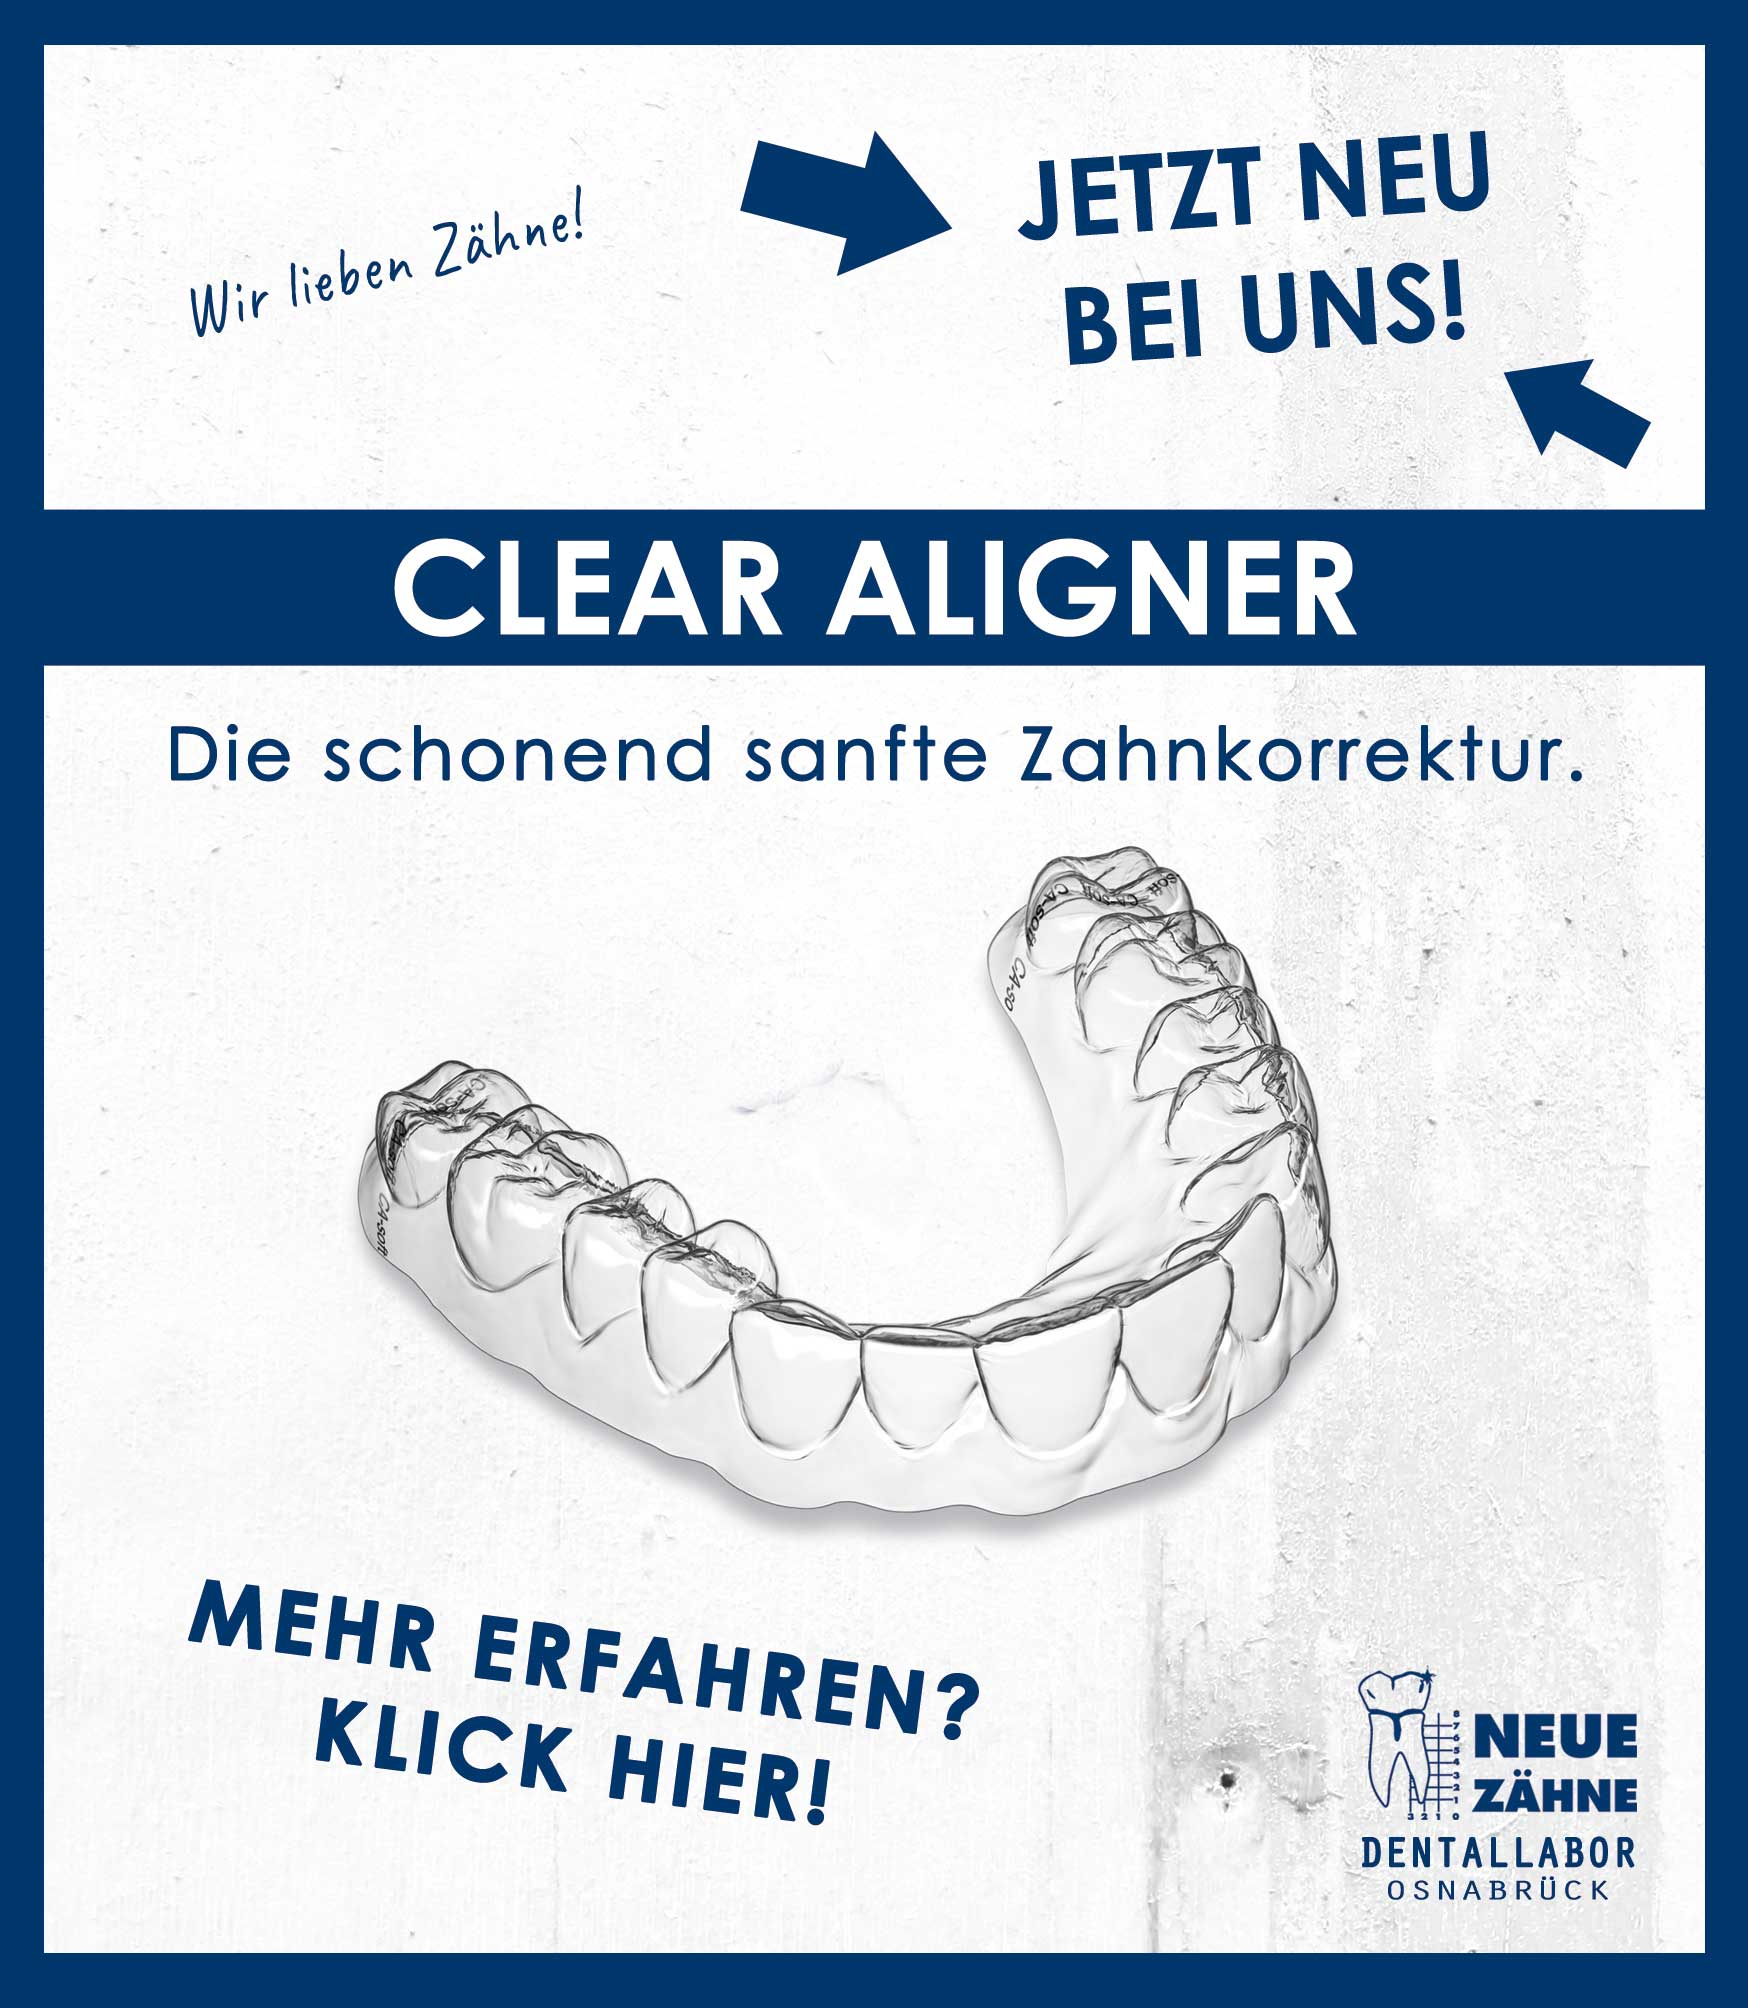 clear-aligner-nz2019